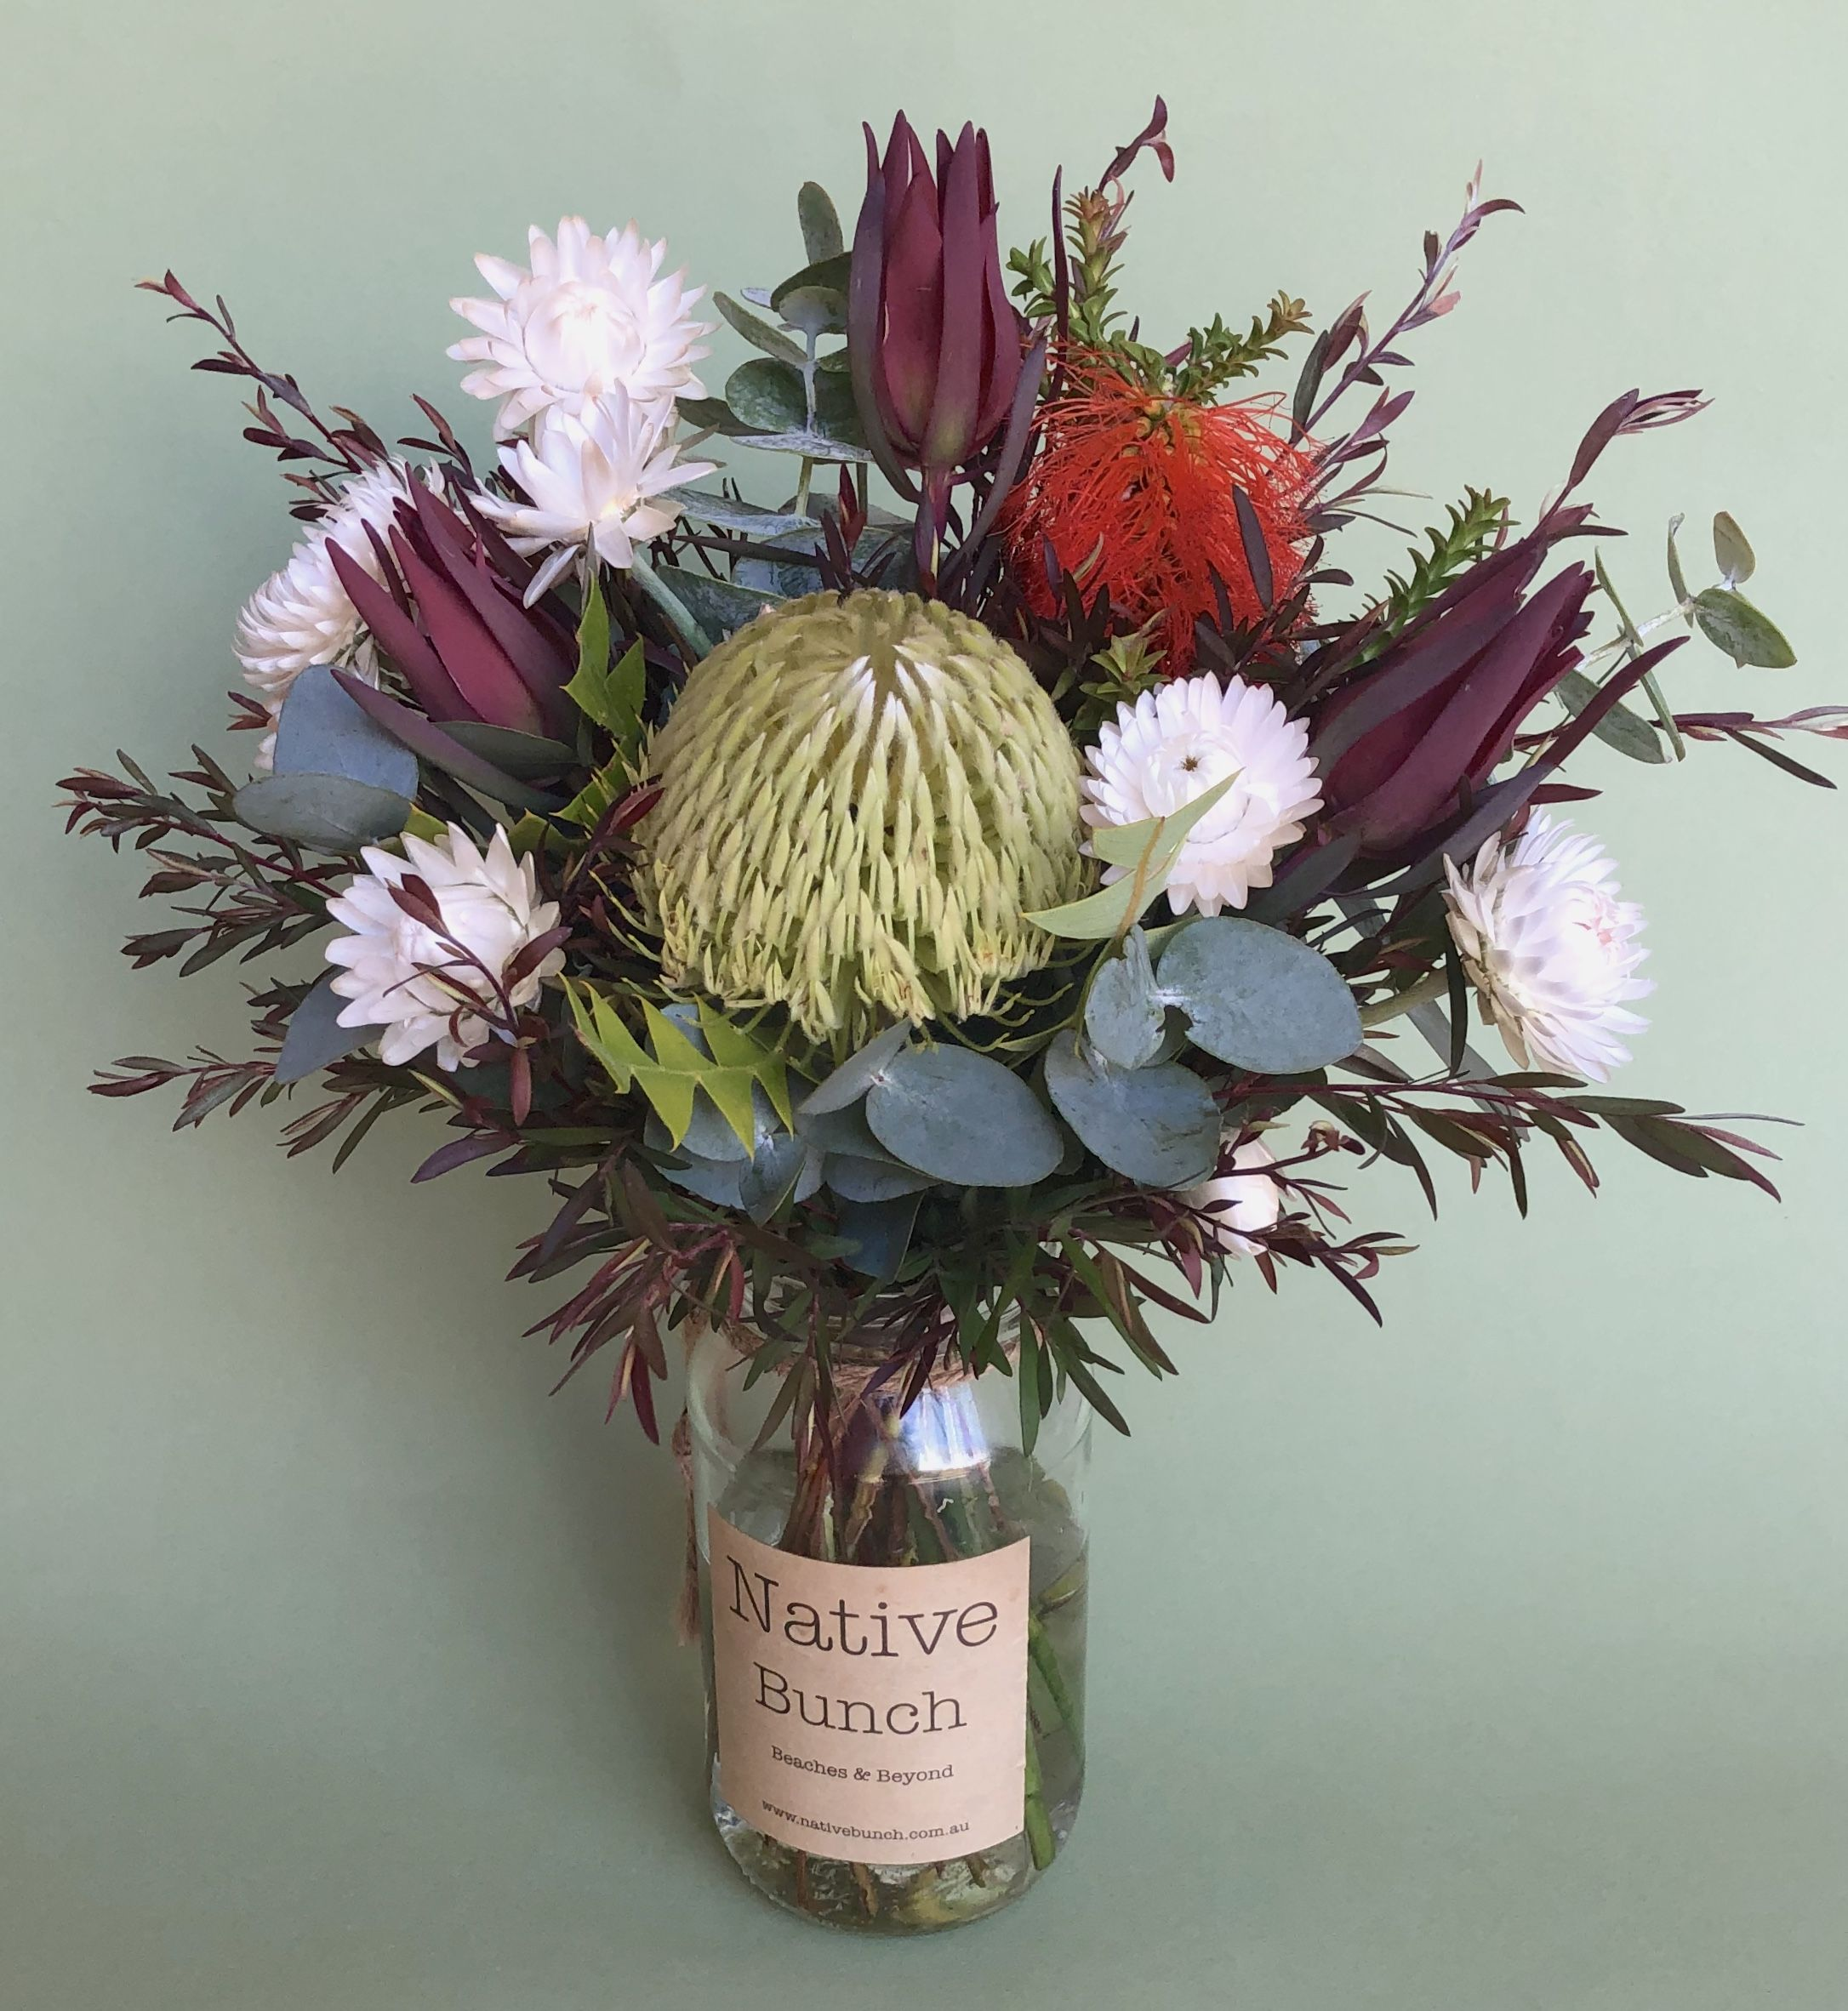 This Week S Natives At Native Bunch Banksia Beaufortia Strawflowers Leucadendrons Ti Tree Foliage Flower Delivery Australian Native Flowers Flowers